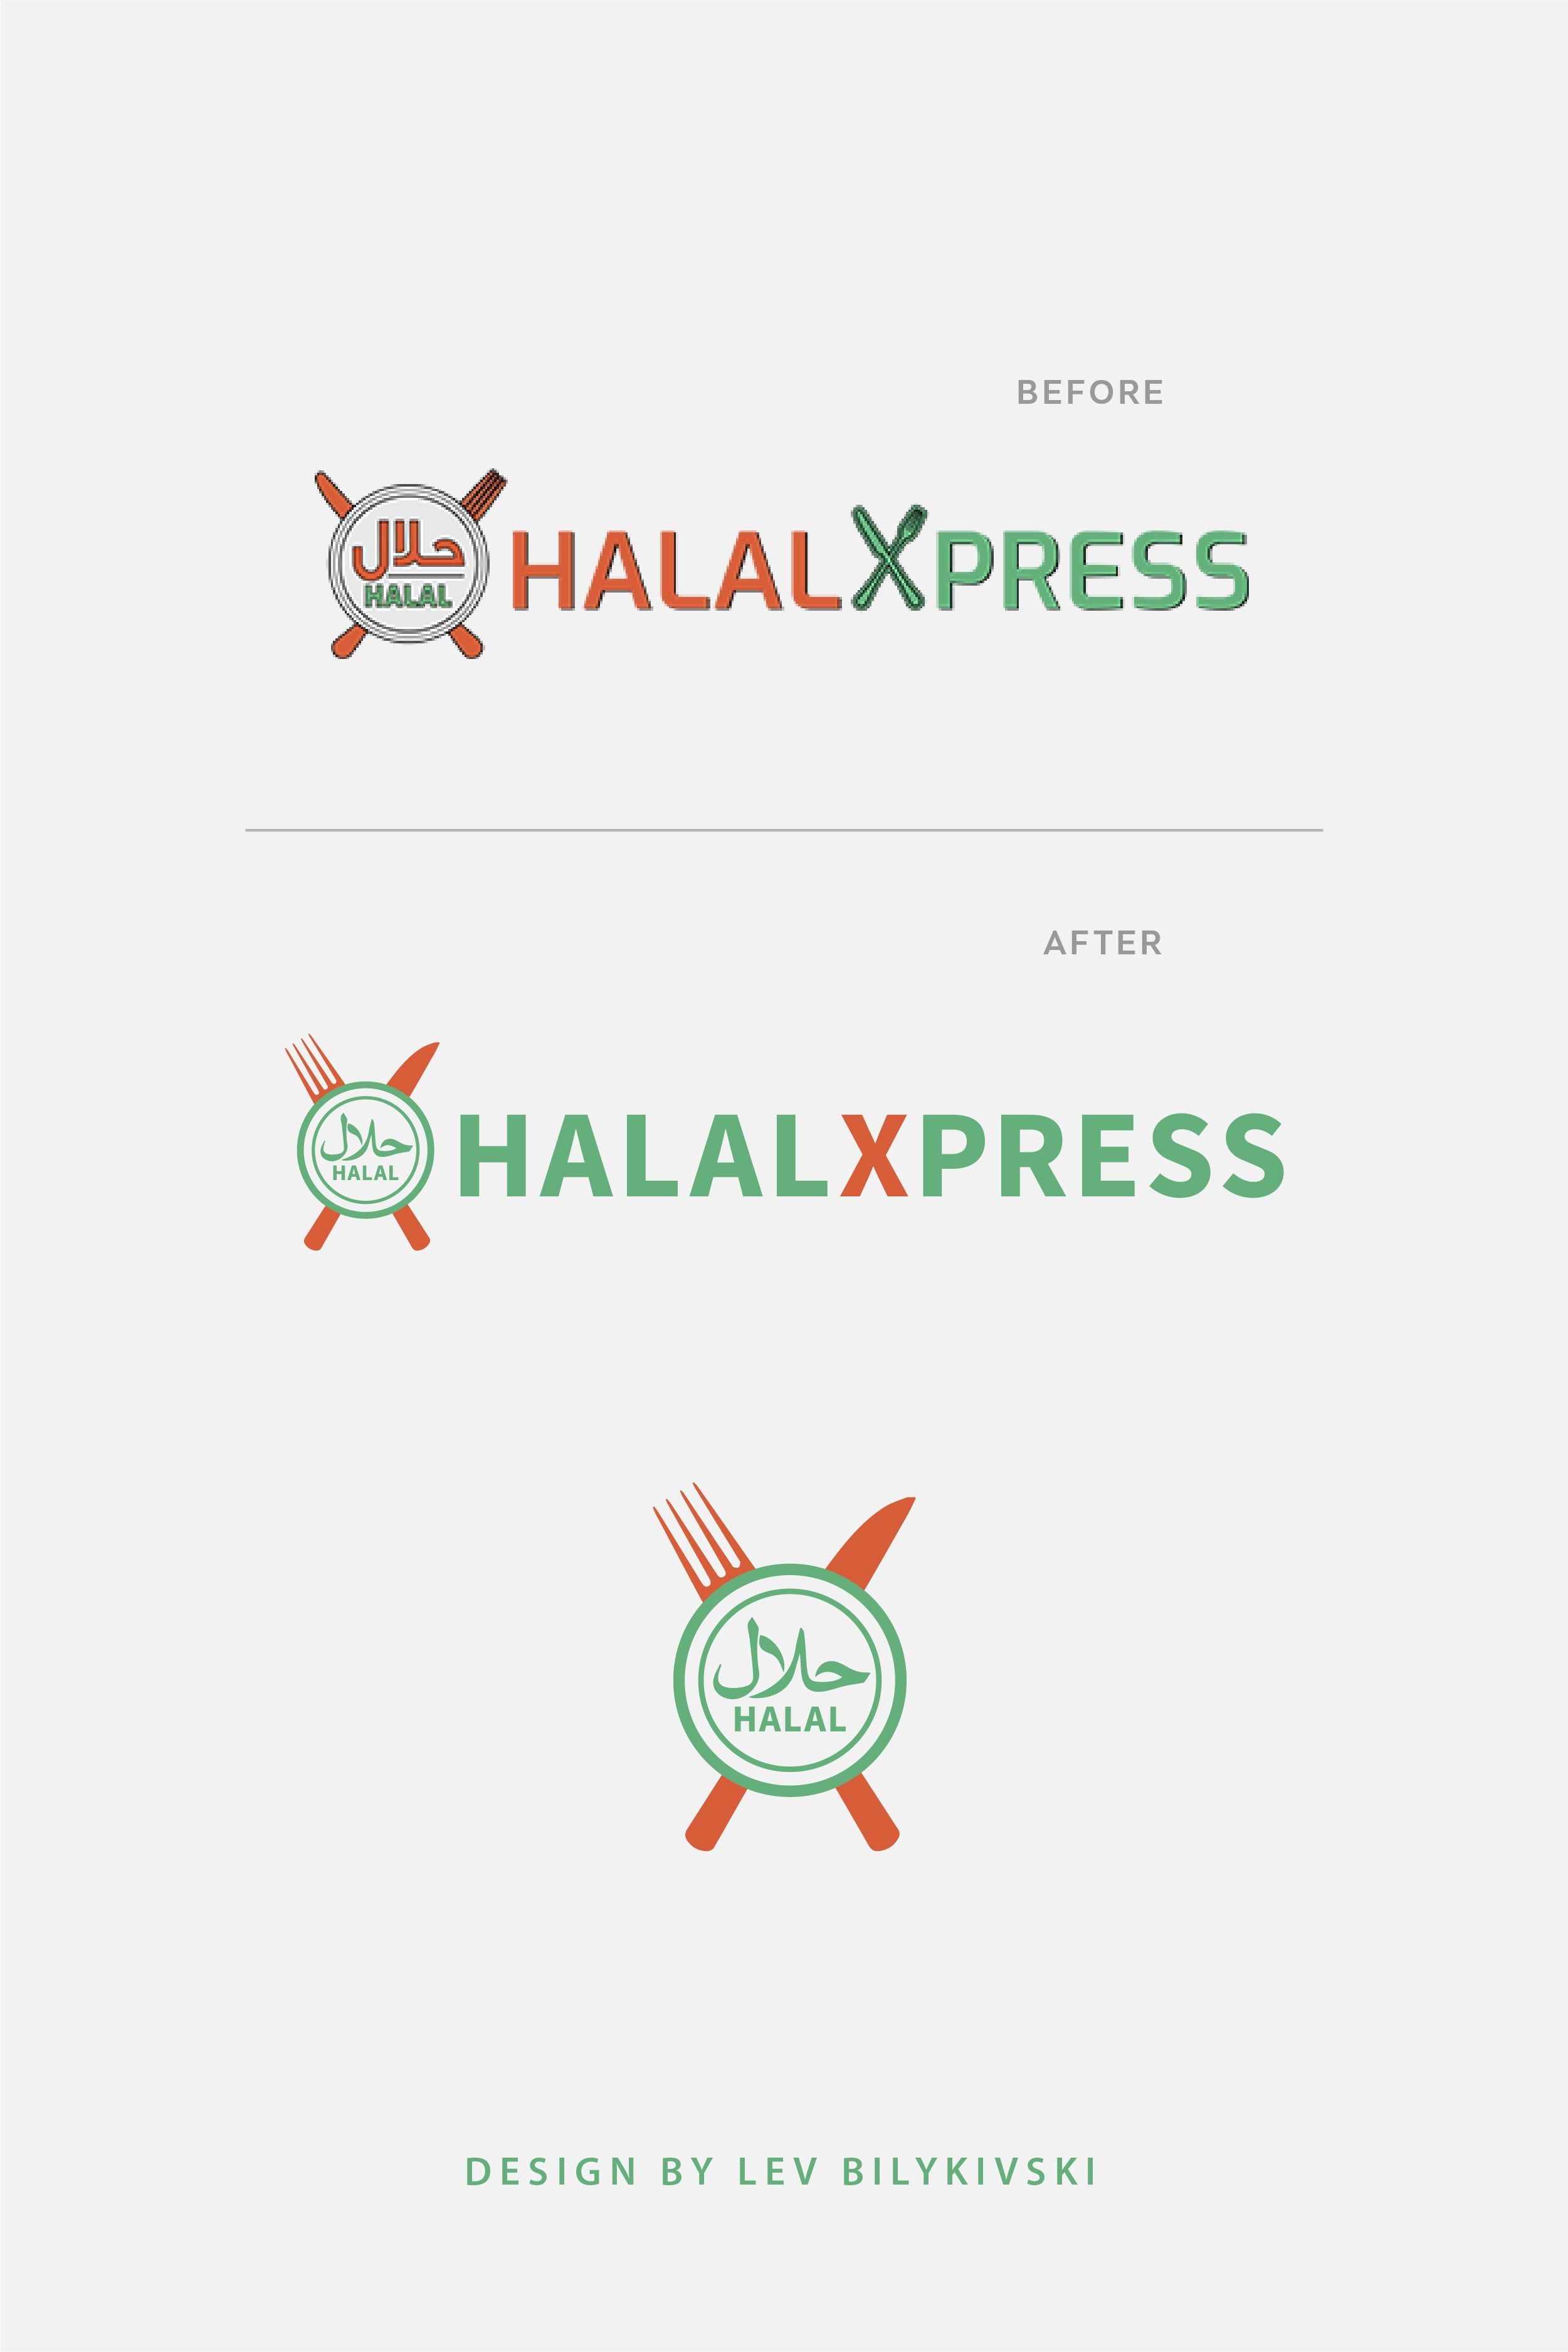 Halal restaurant logo redesign halalXpress1. Changed the